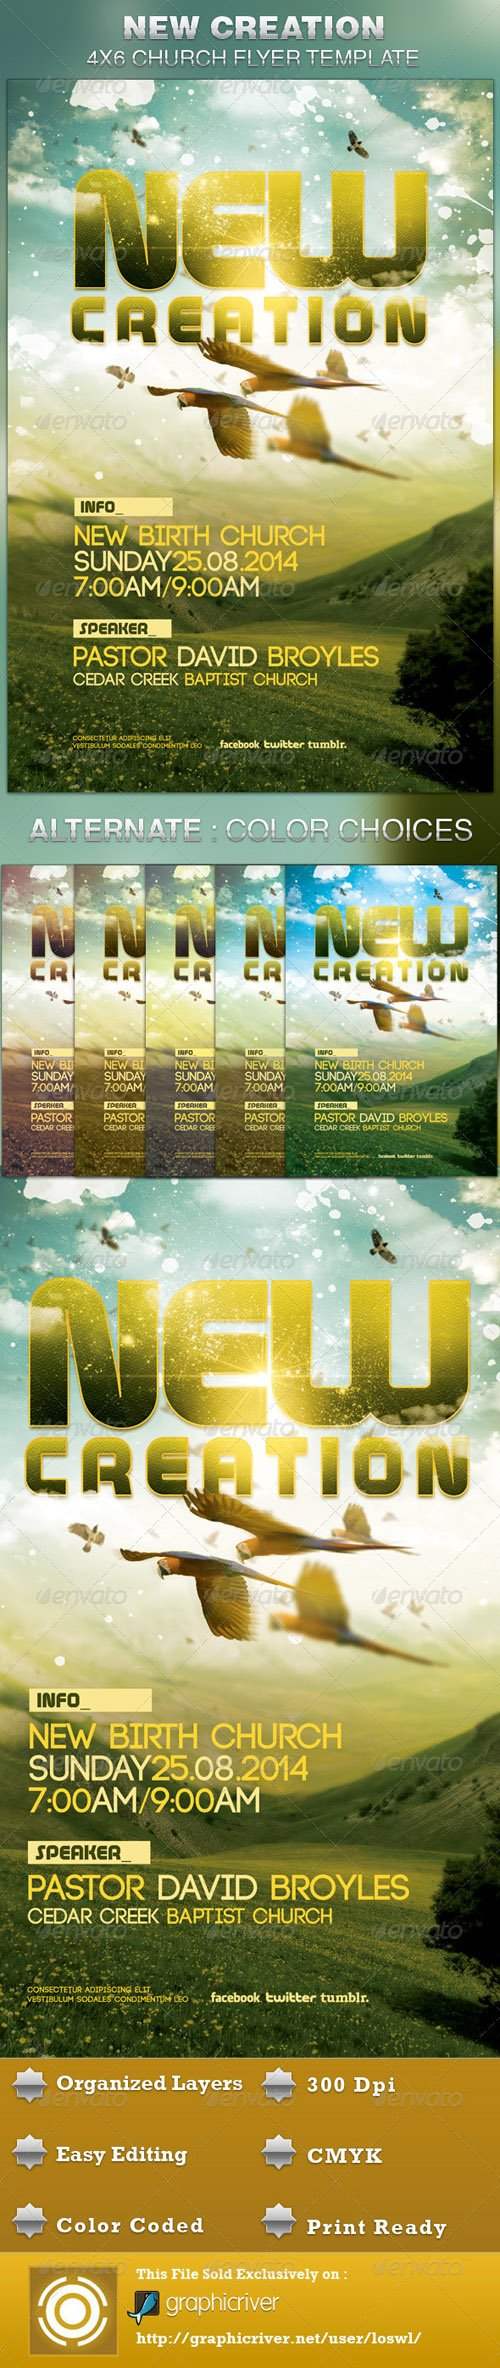 GraphicRiver - New Creation Church Flyer Template